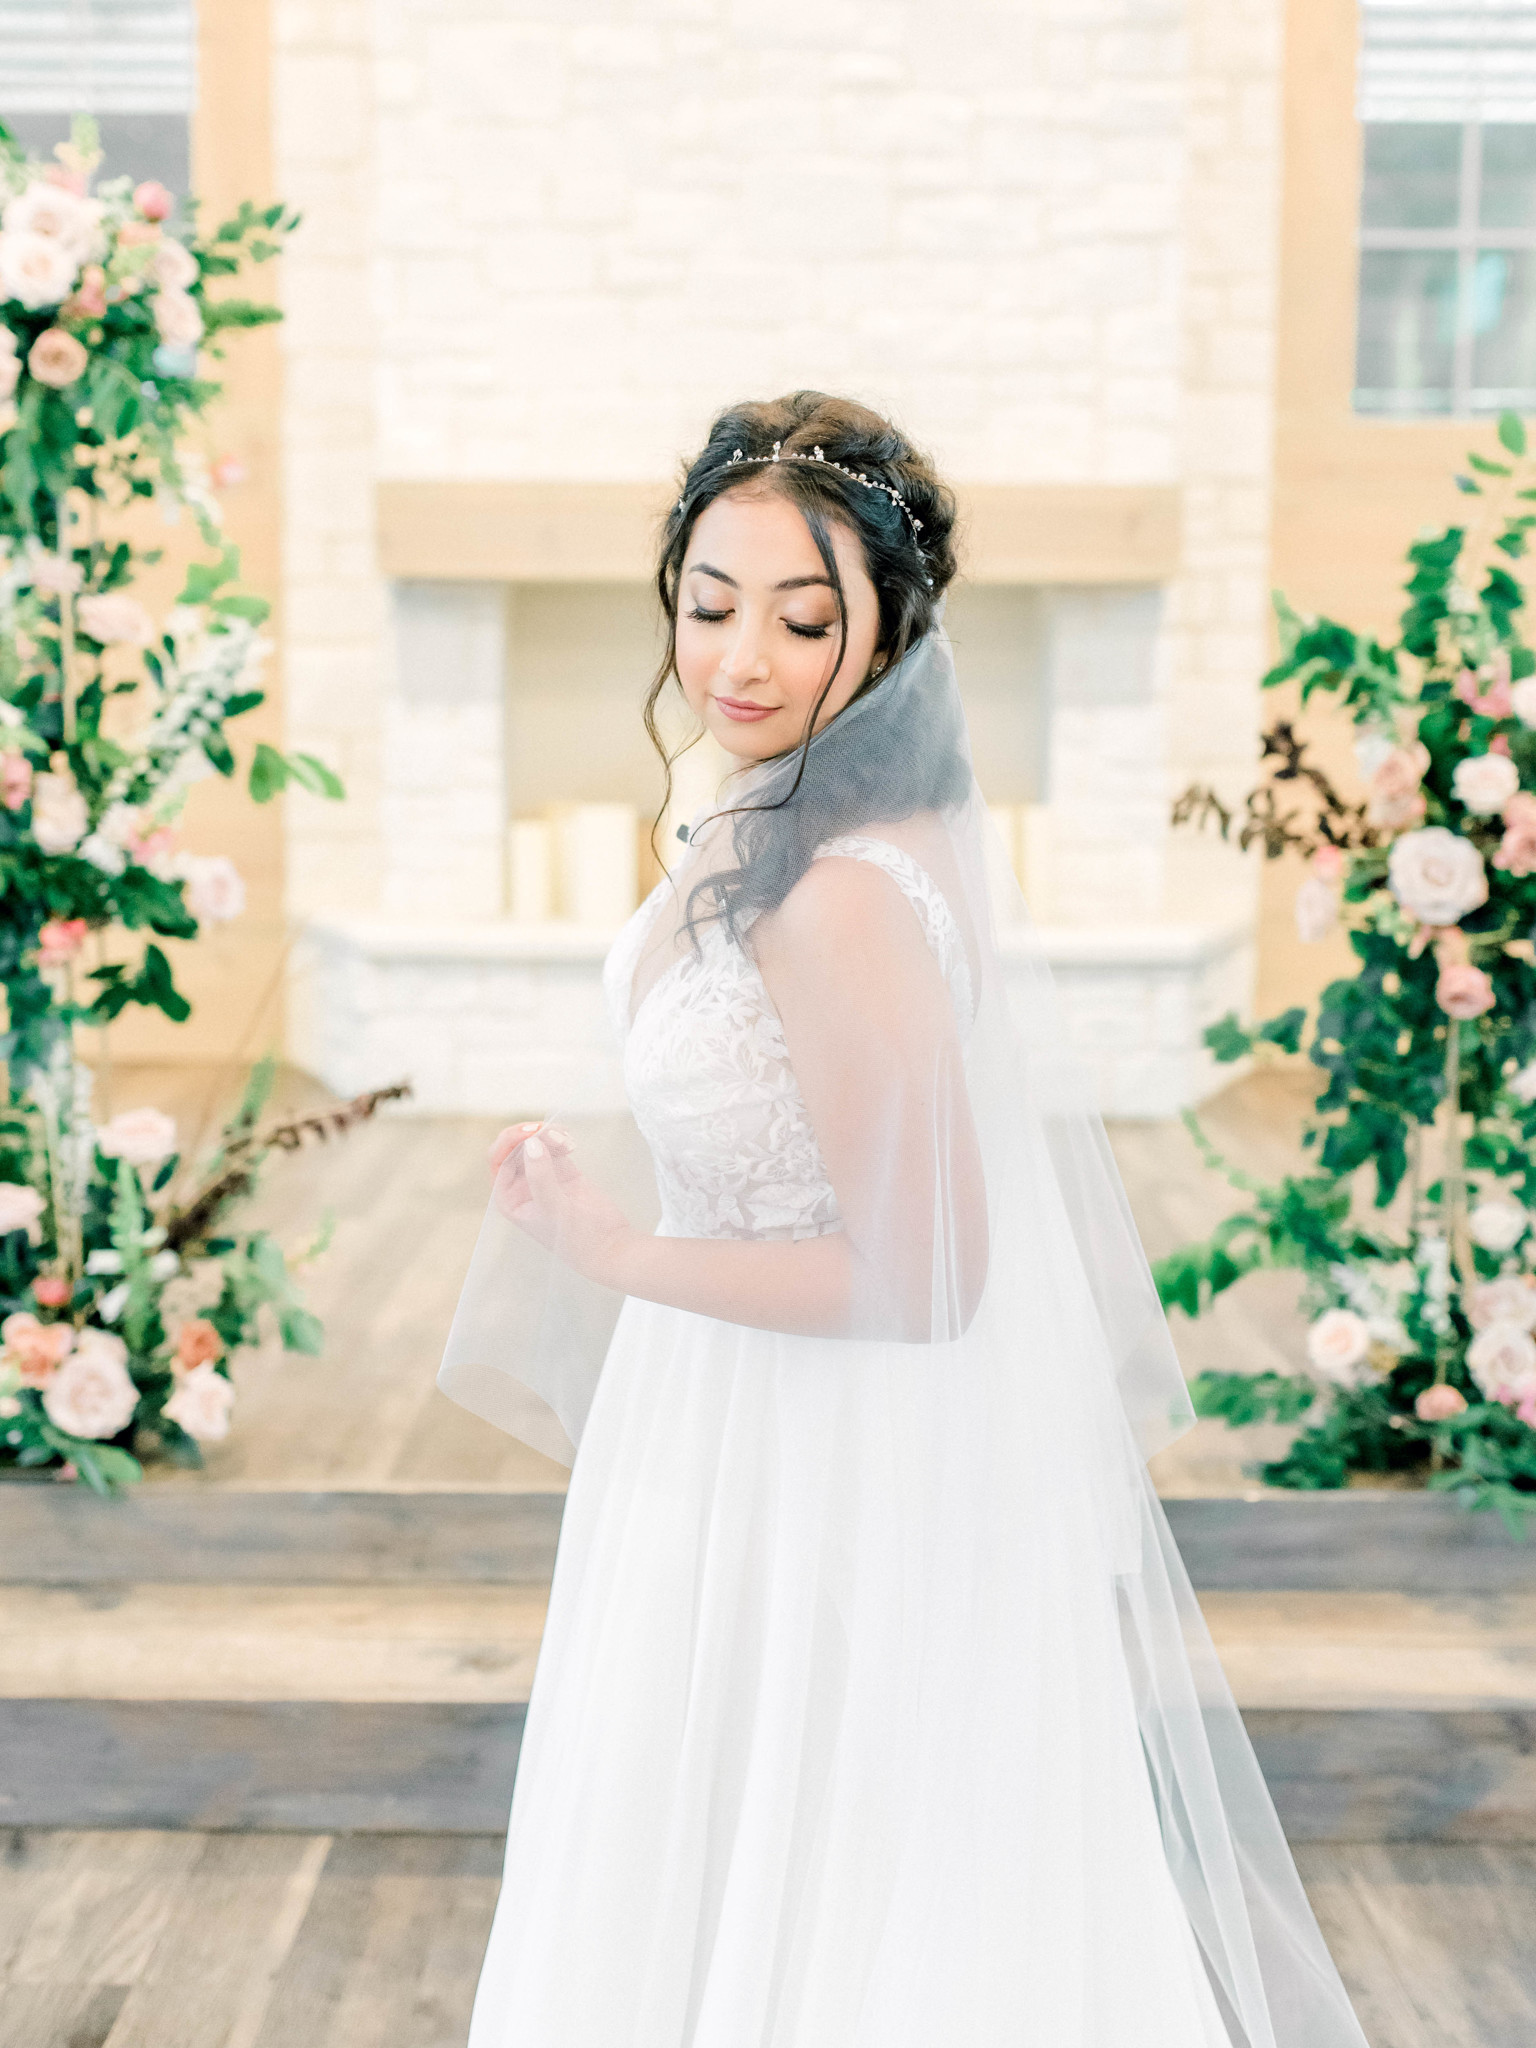 Wedding makeup: Whimsical mauve wedding inspiration on Alexa Kay Events. See more romantic wedding ideas at alexakayevents.com!